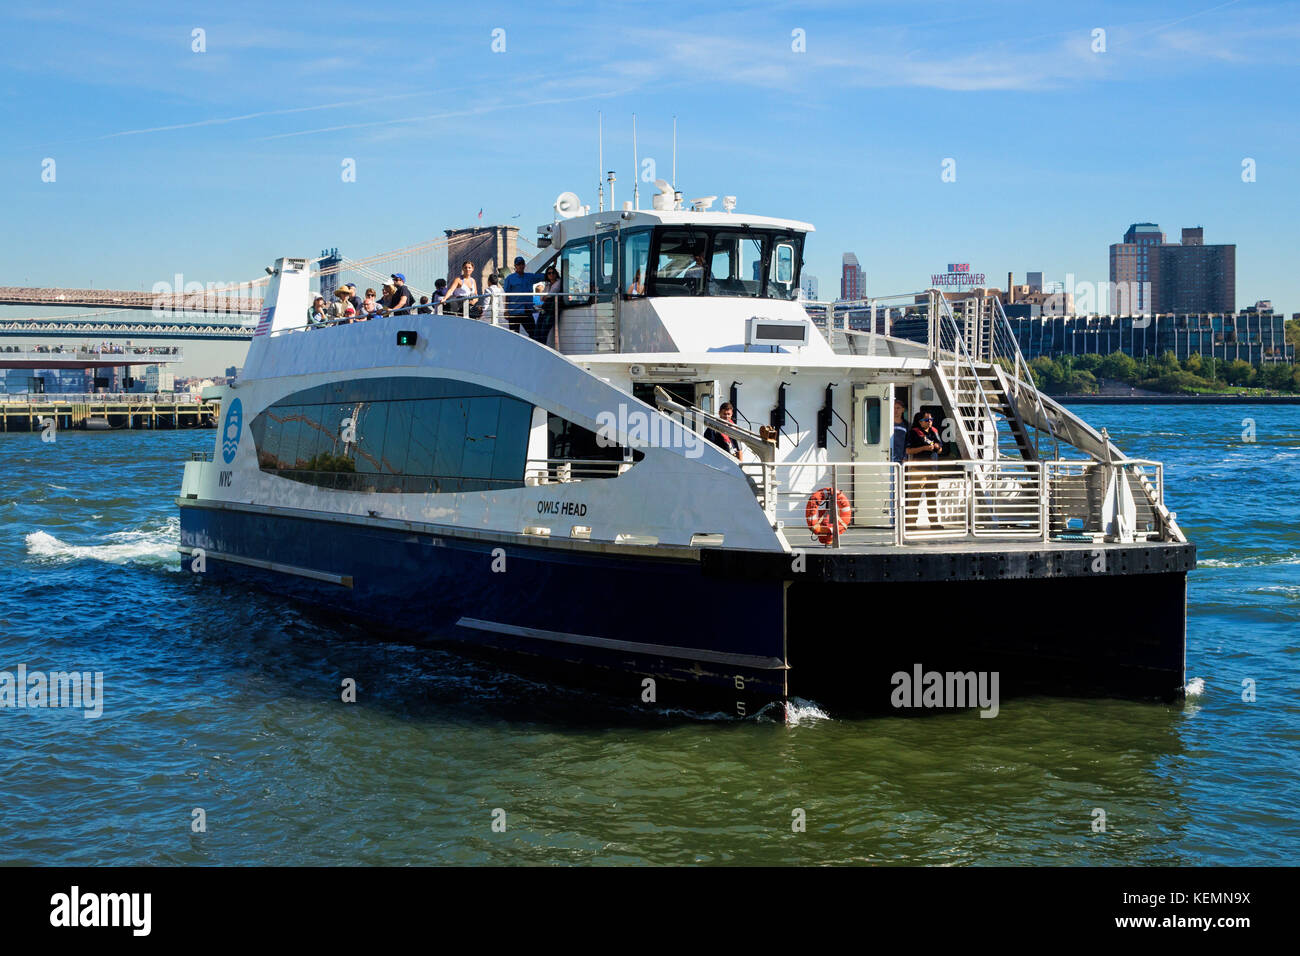 Rockaway Ferry about to dock at Pier 11 near Wall Street